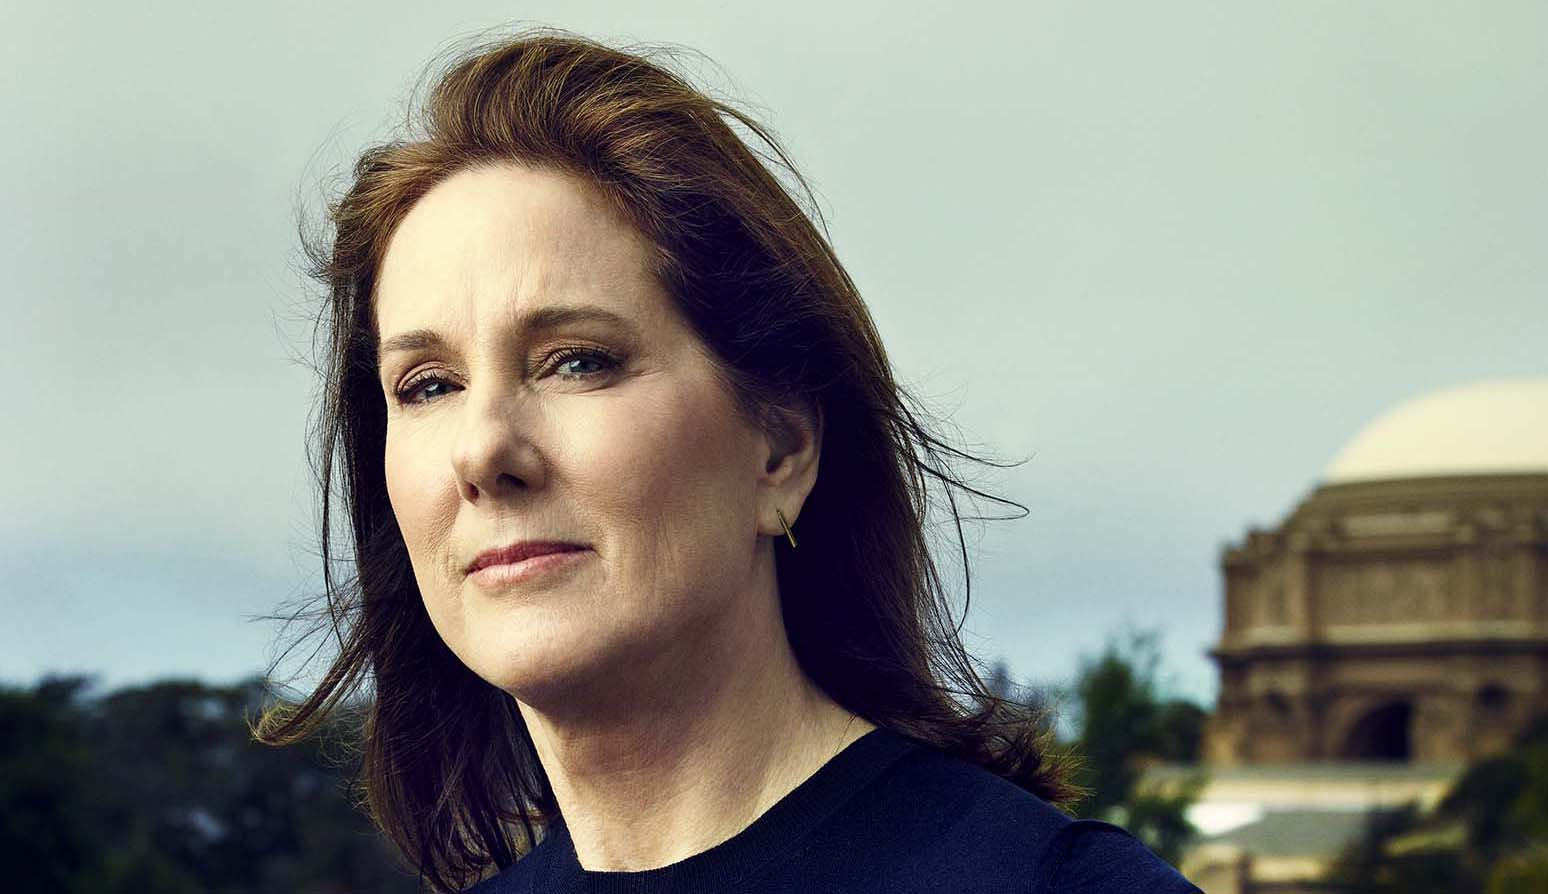 Kathleen Kennedy, head of Lucasfilm and producer of the upcoming Star Wars movie, The Force Awakens